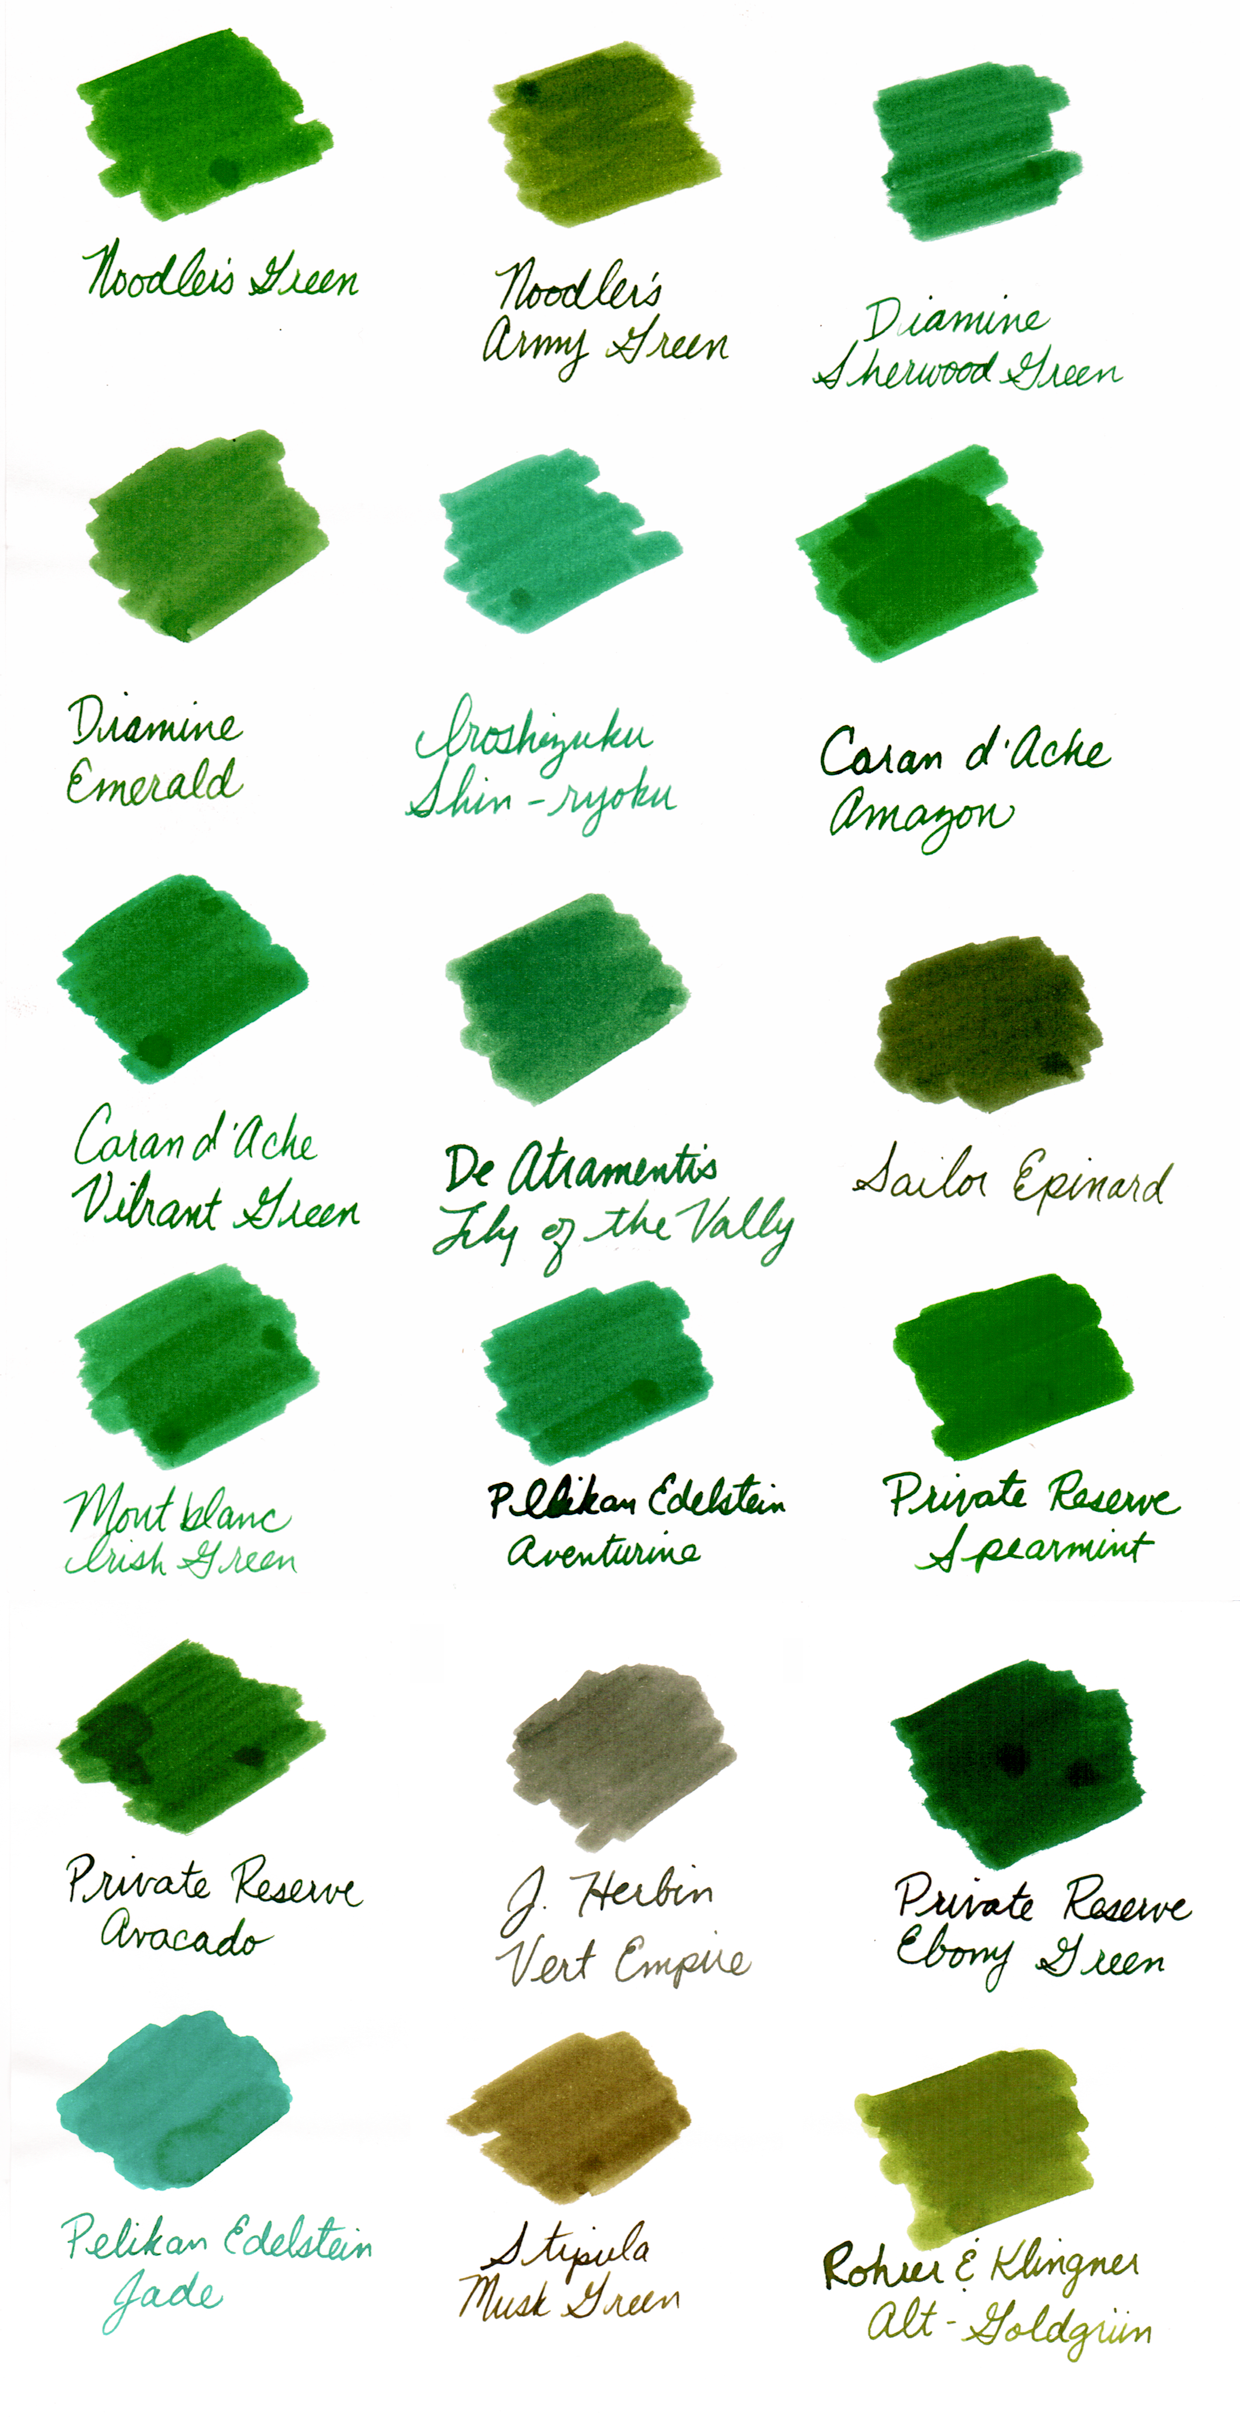 A Comparison of Green Inks